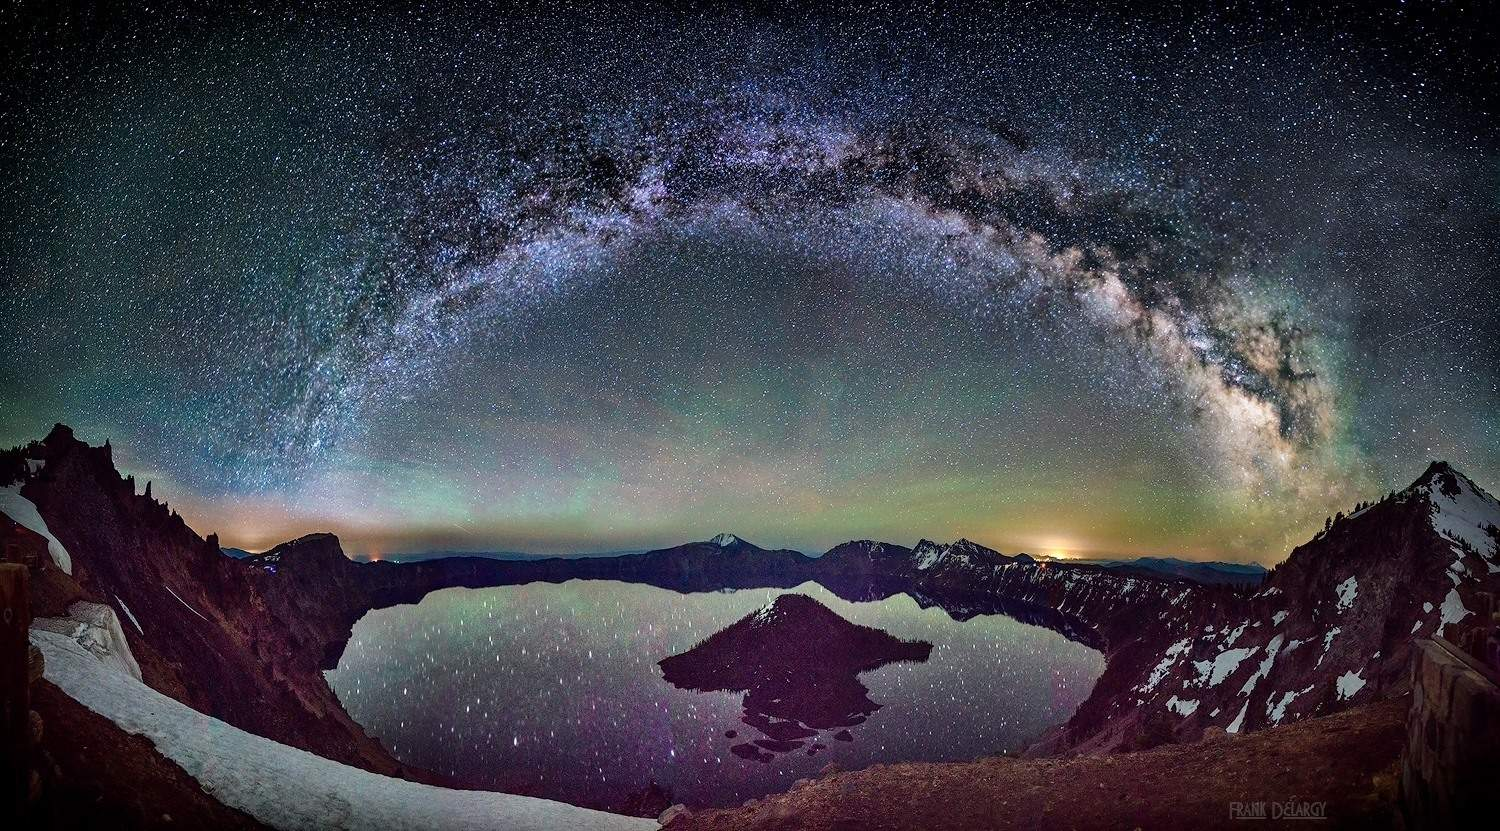 The milky way over Crater Lake in Oregon. The green and reddish colored areas just above the crater are from airglow, basically elements, mostly nitrogen and oxygen, whose electrons having been ionized by the sun during the day now recombining with their host atoms. The green and the red are from oxygen atoms that are glowing. At first I thought it might be camera noise but then I could see that the light was actually reflected in the lake. Technical: This is a panorama of 21 merged images, 3 rows of 7 vertical images each. It is impossible to imagine the scale but with my wide angle lens I was only able to get the island (Wizard Island) in one frame. This was at 3 AM on a clear night last May just as the bright moon set. The moon was so bright that you could not see the milky way until the moon set. I then had about an hour before the sky would start to lighten and the milky way would disappear again. It took about 20 minutes to take all of the exposures. Each exposure was 30 seconds at f/2.8 and ISO 1600. The lowest row was at about 20 mm and the top two rows were at 16 mm. I used a Sony A7R with a Canon 16-35mm L II lens — at Crater Lake National Park.